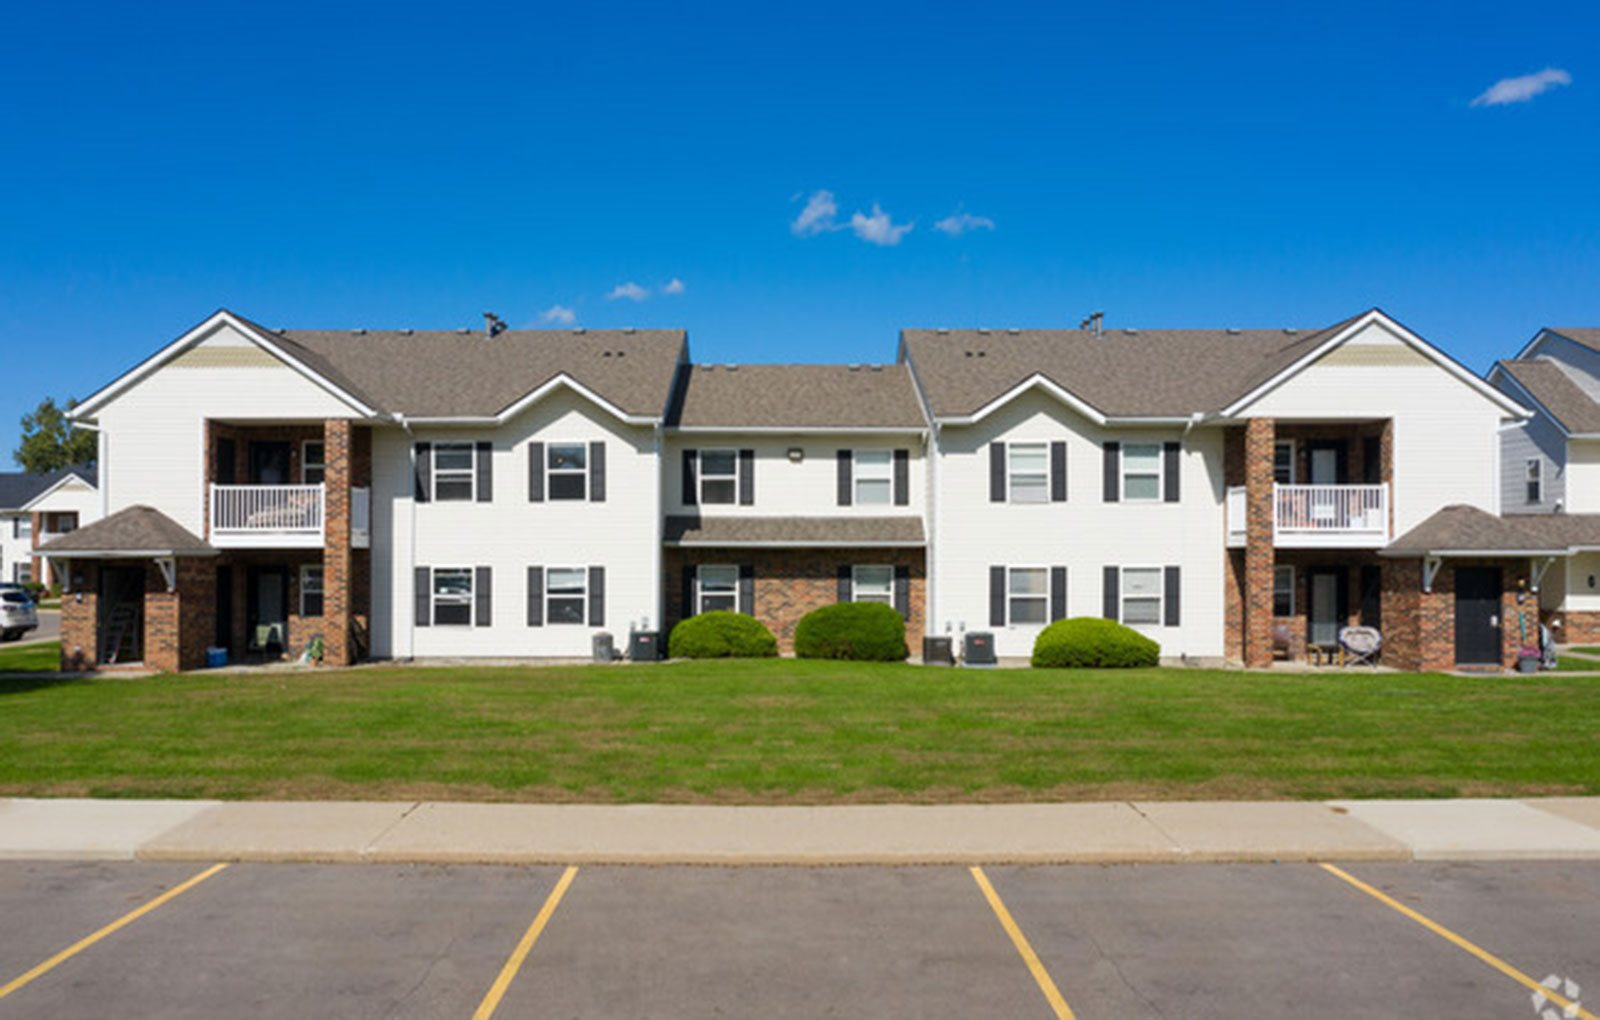 Apartment buildings exterior and parking lot area-Lakestone Apartments, Ann Arbor, MI